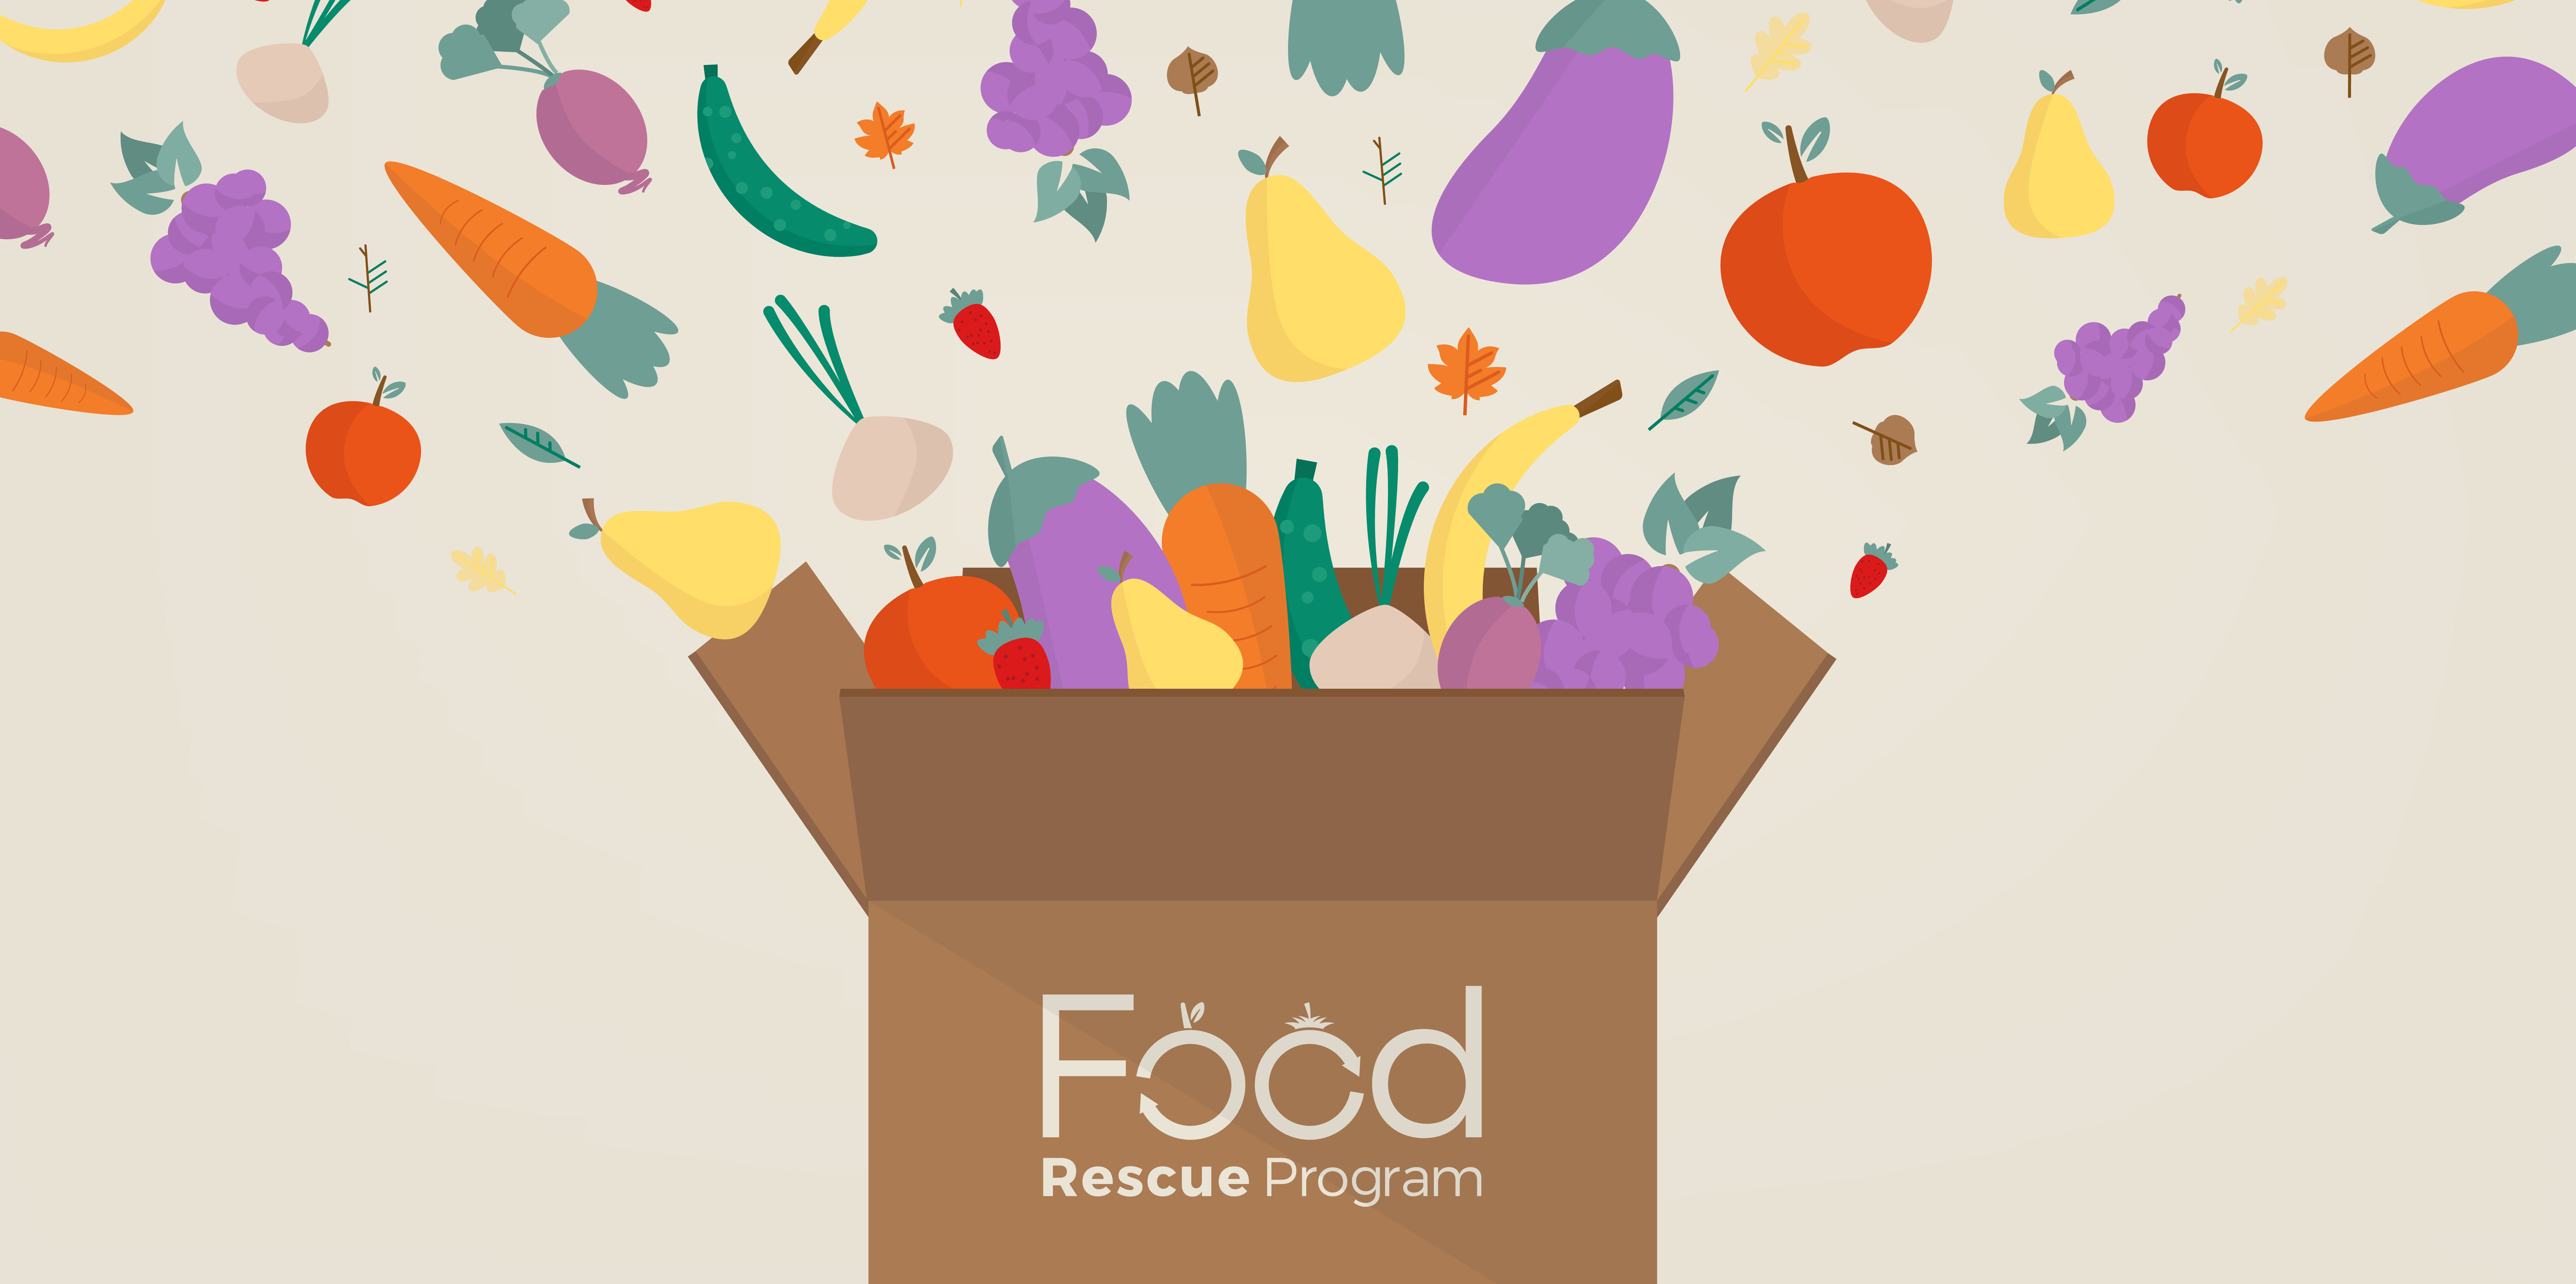 Food_Rescue_Program_Graphic-01_(1).png